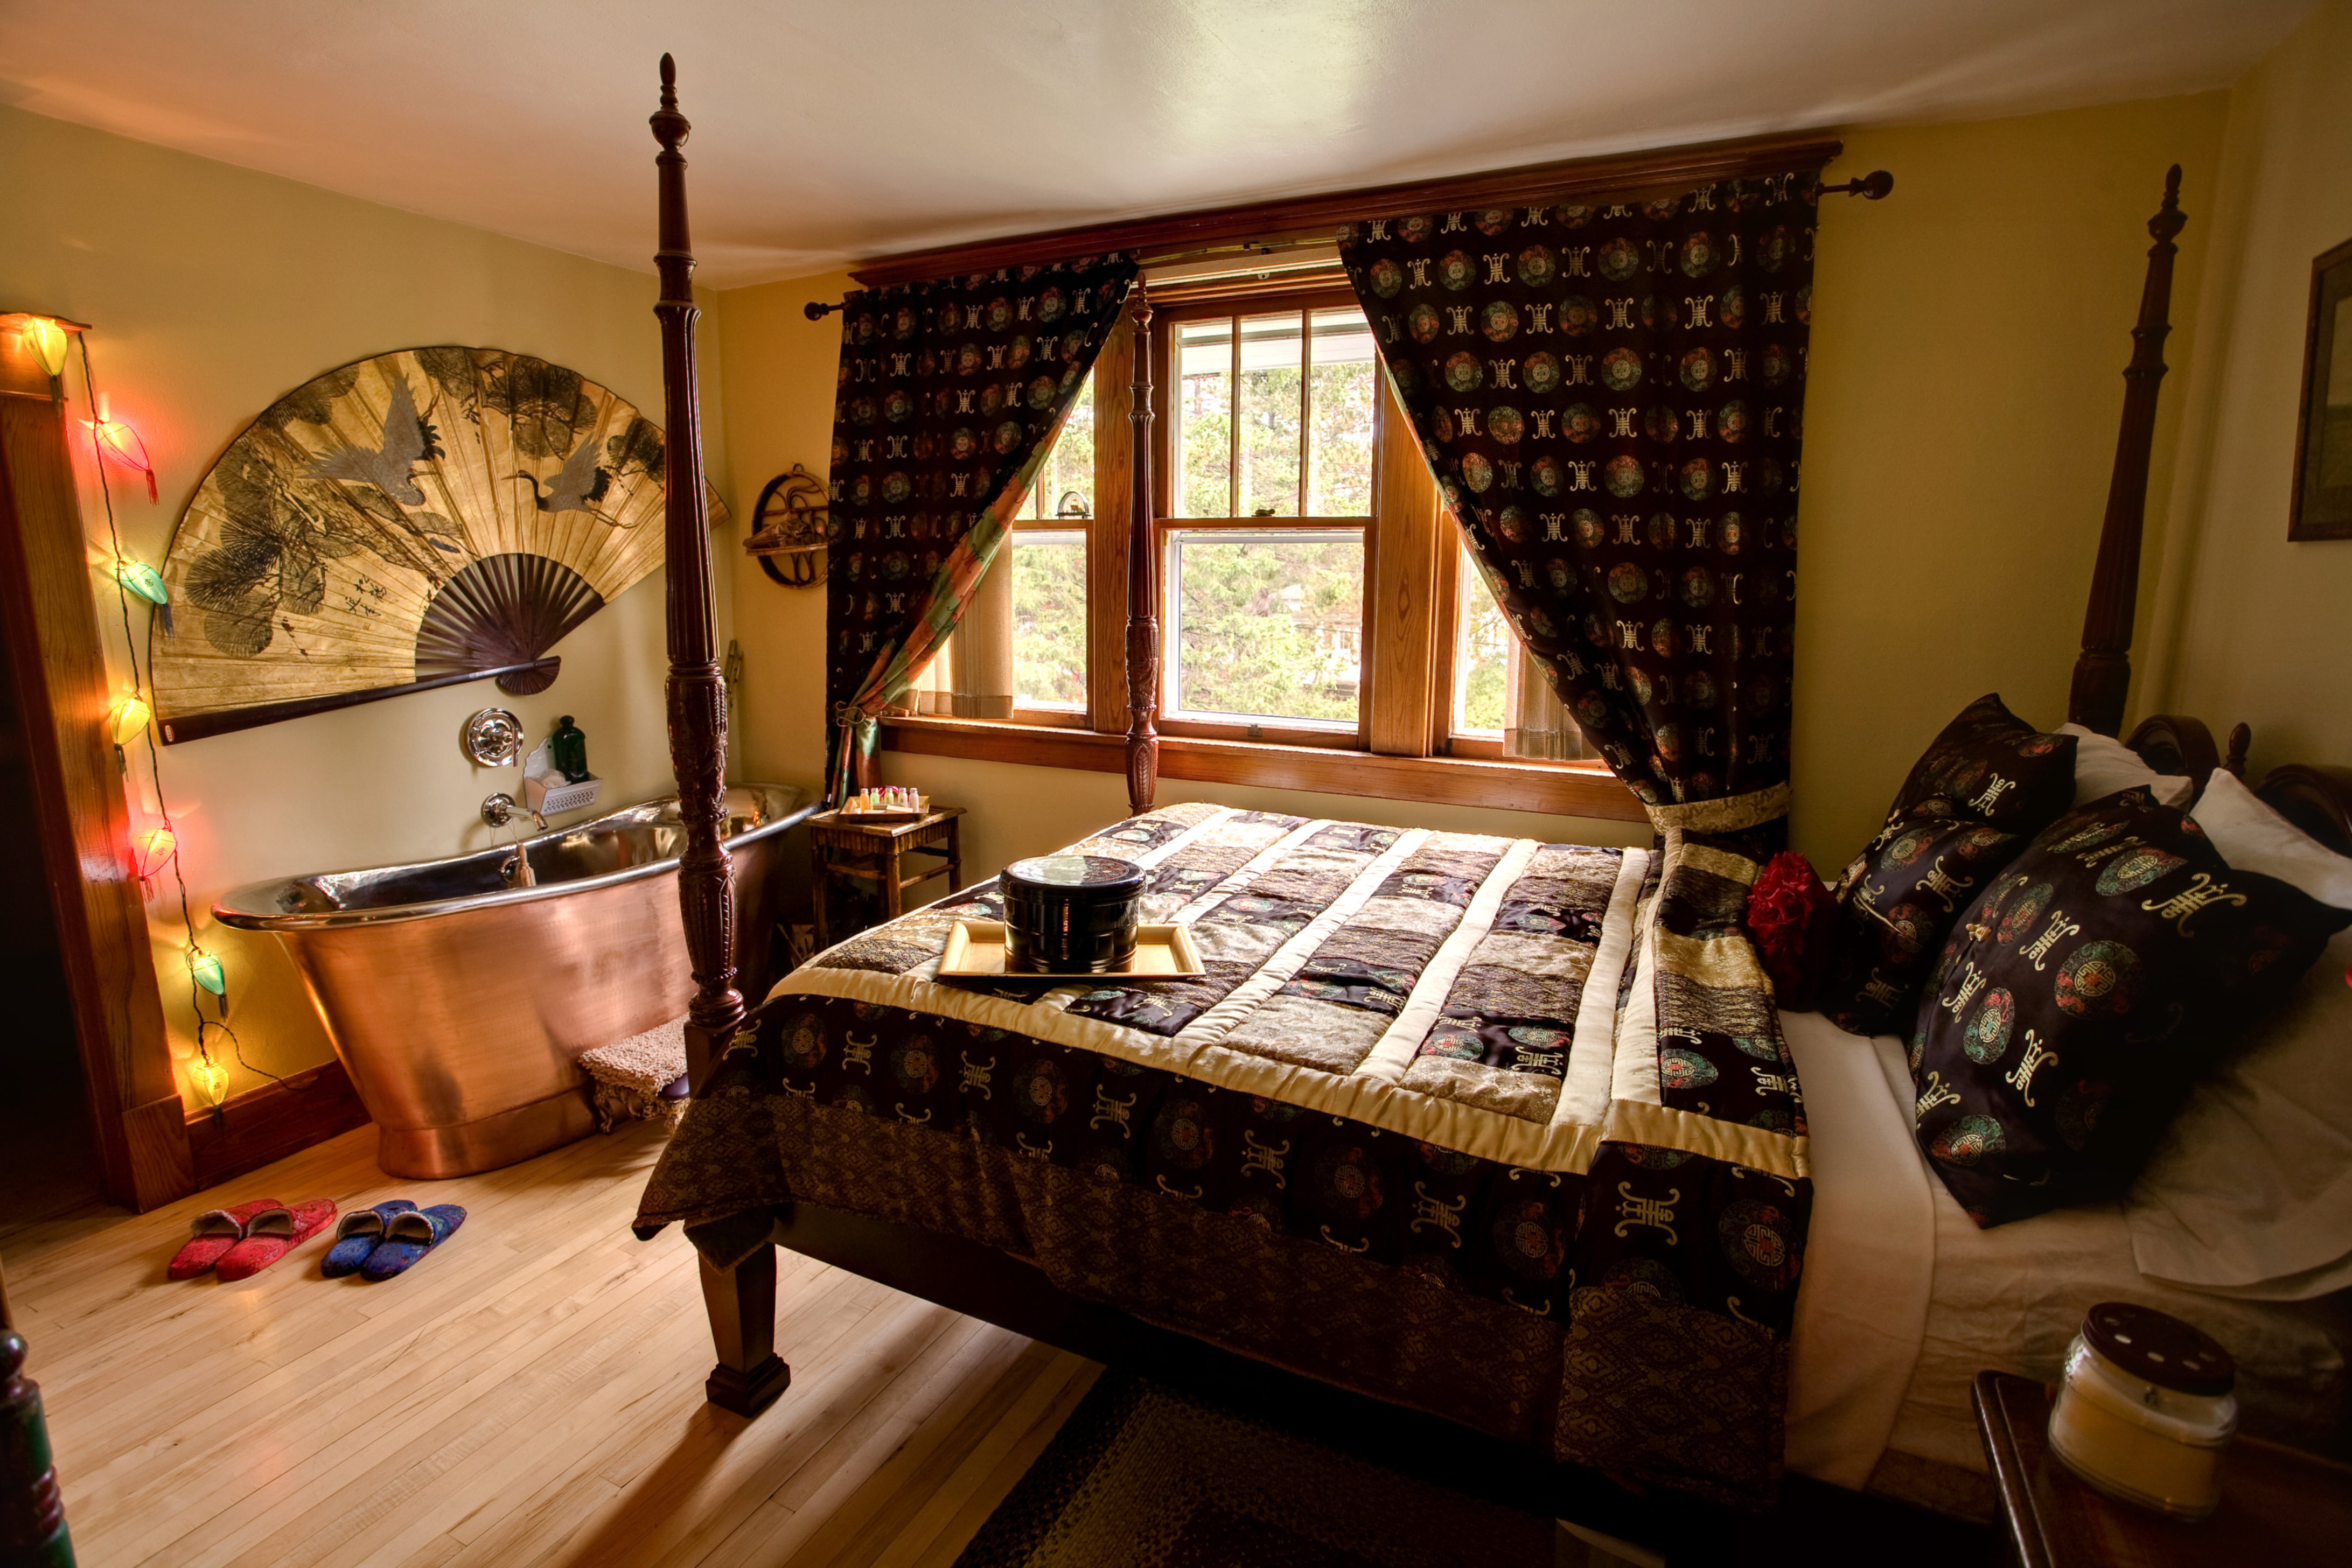 A living room with a bed and a fireplace at Cobblestone Bed and Breakfast.